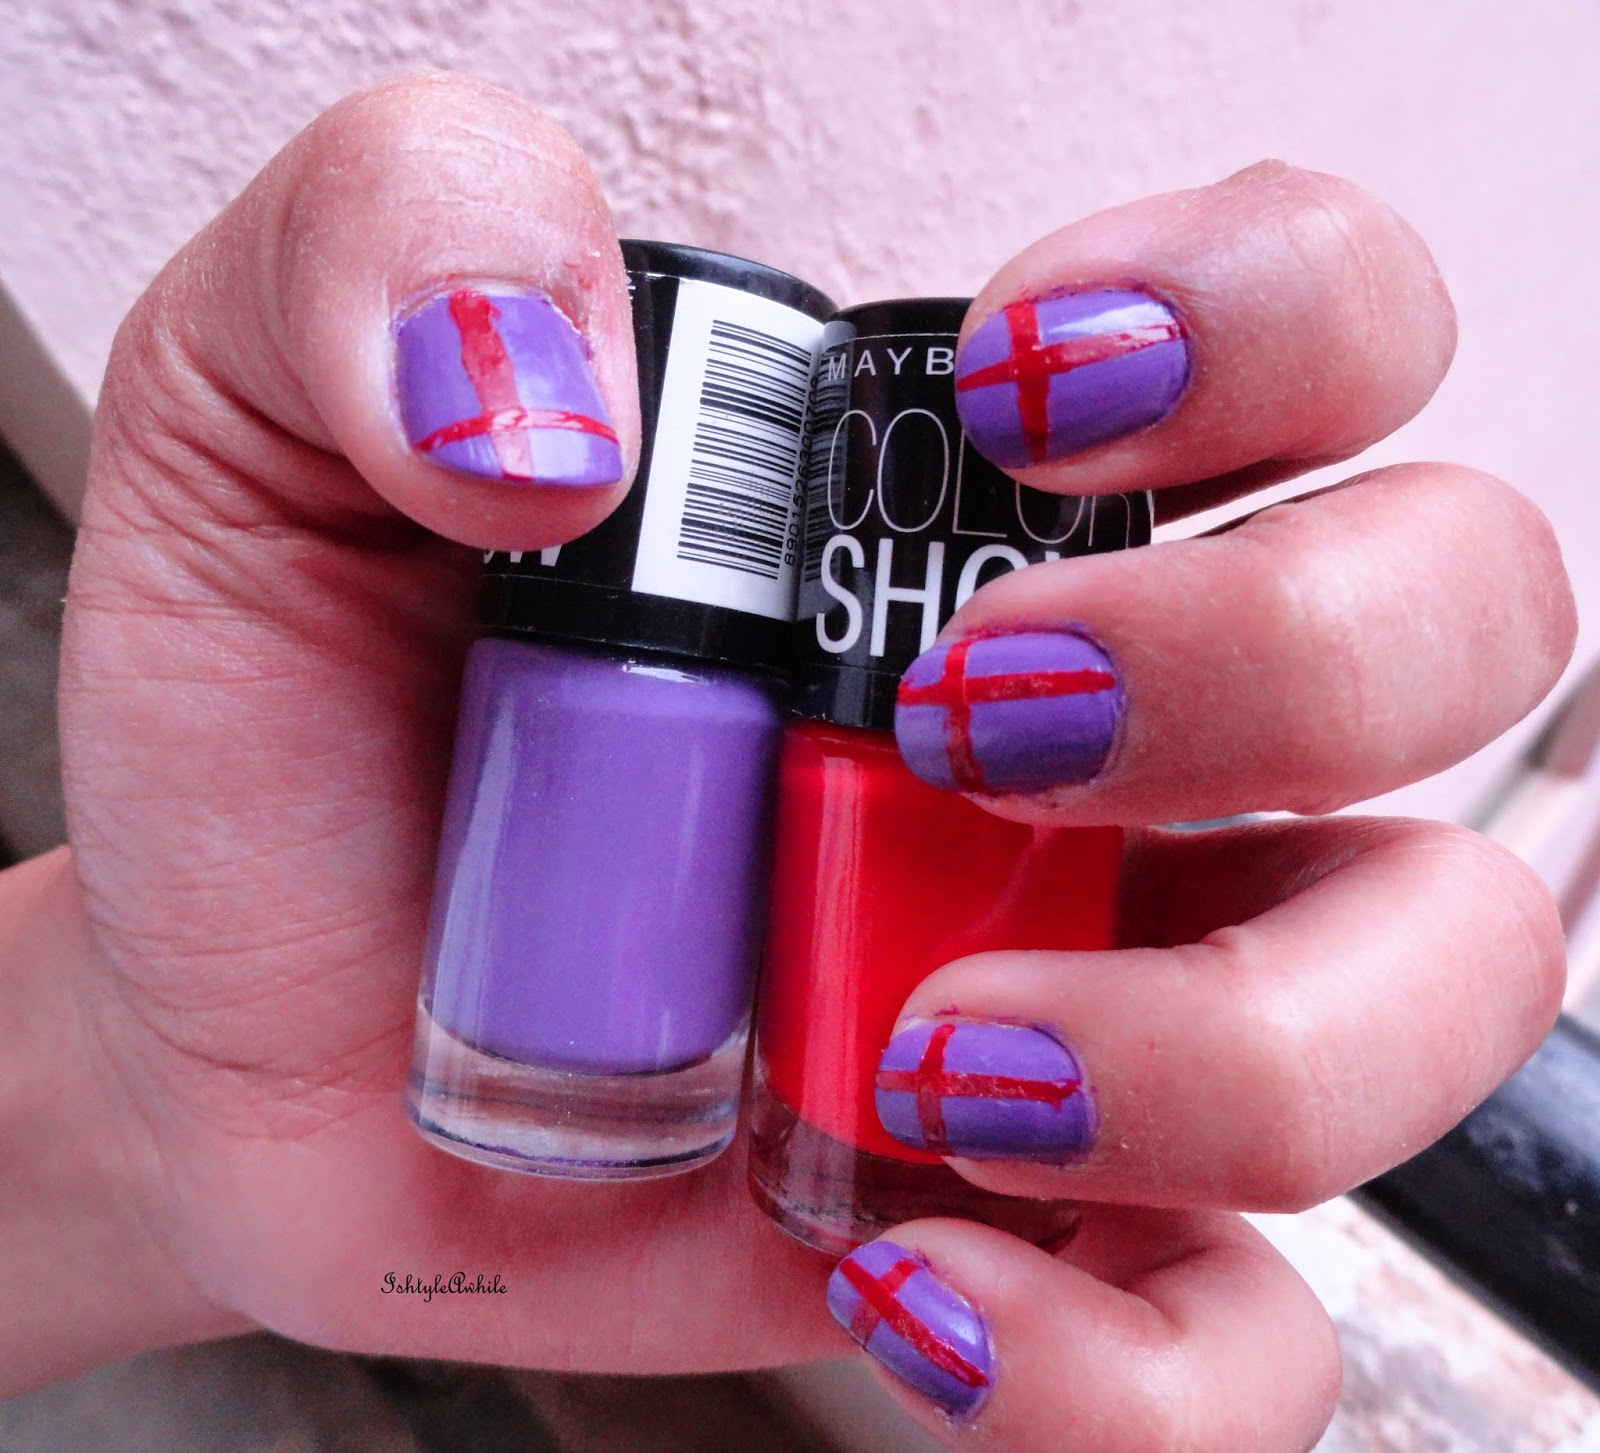 Nail Art: The lines on Lavender. image